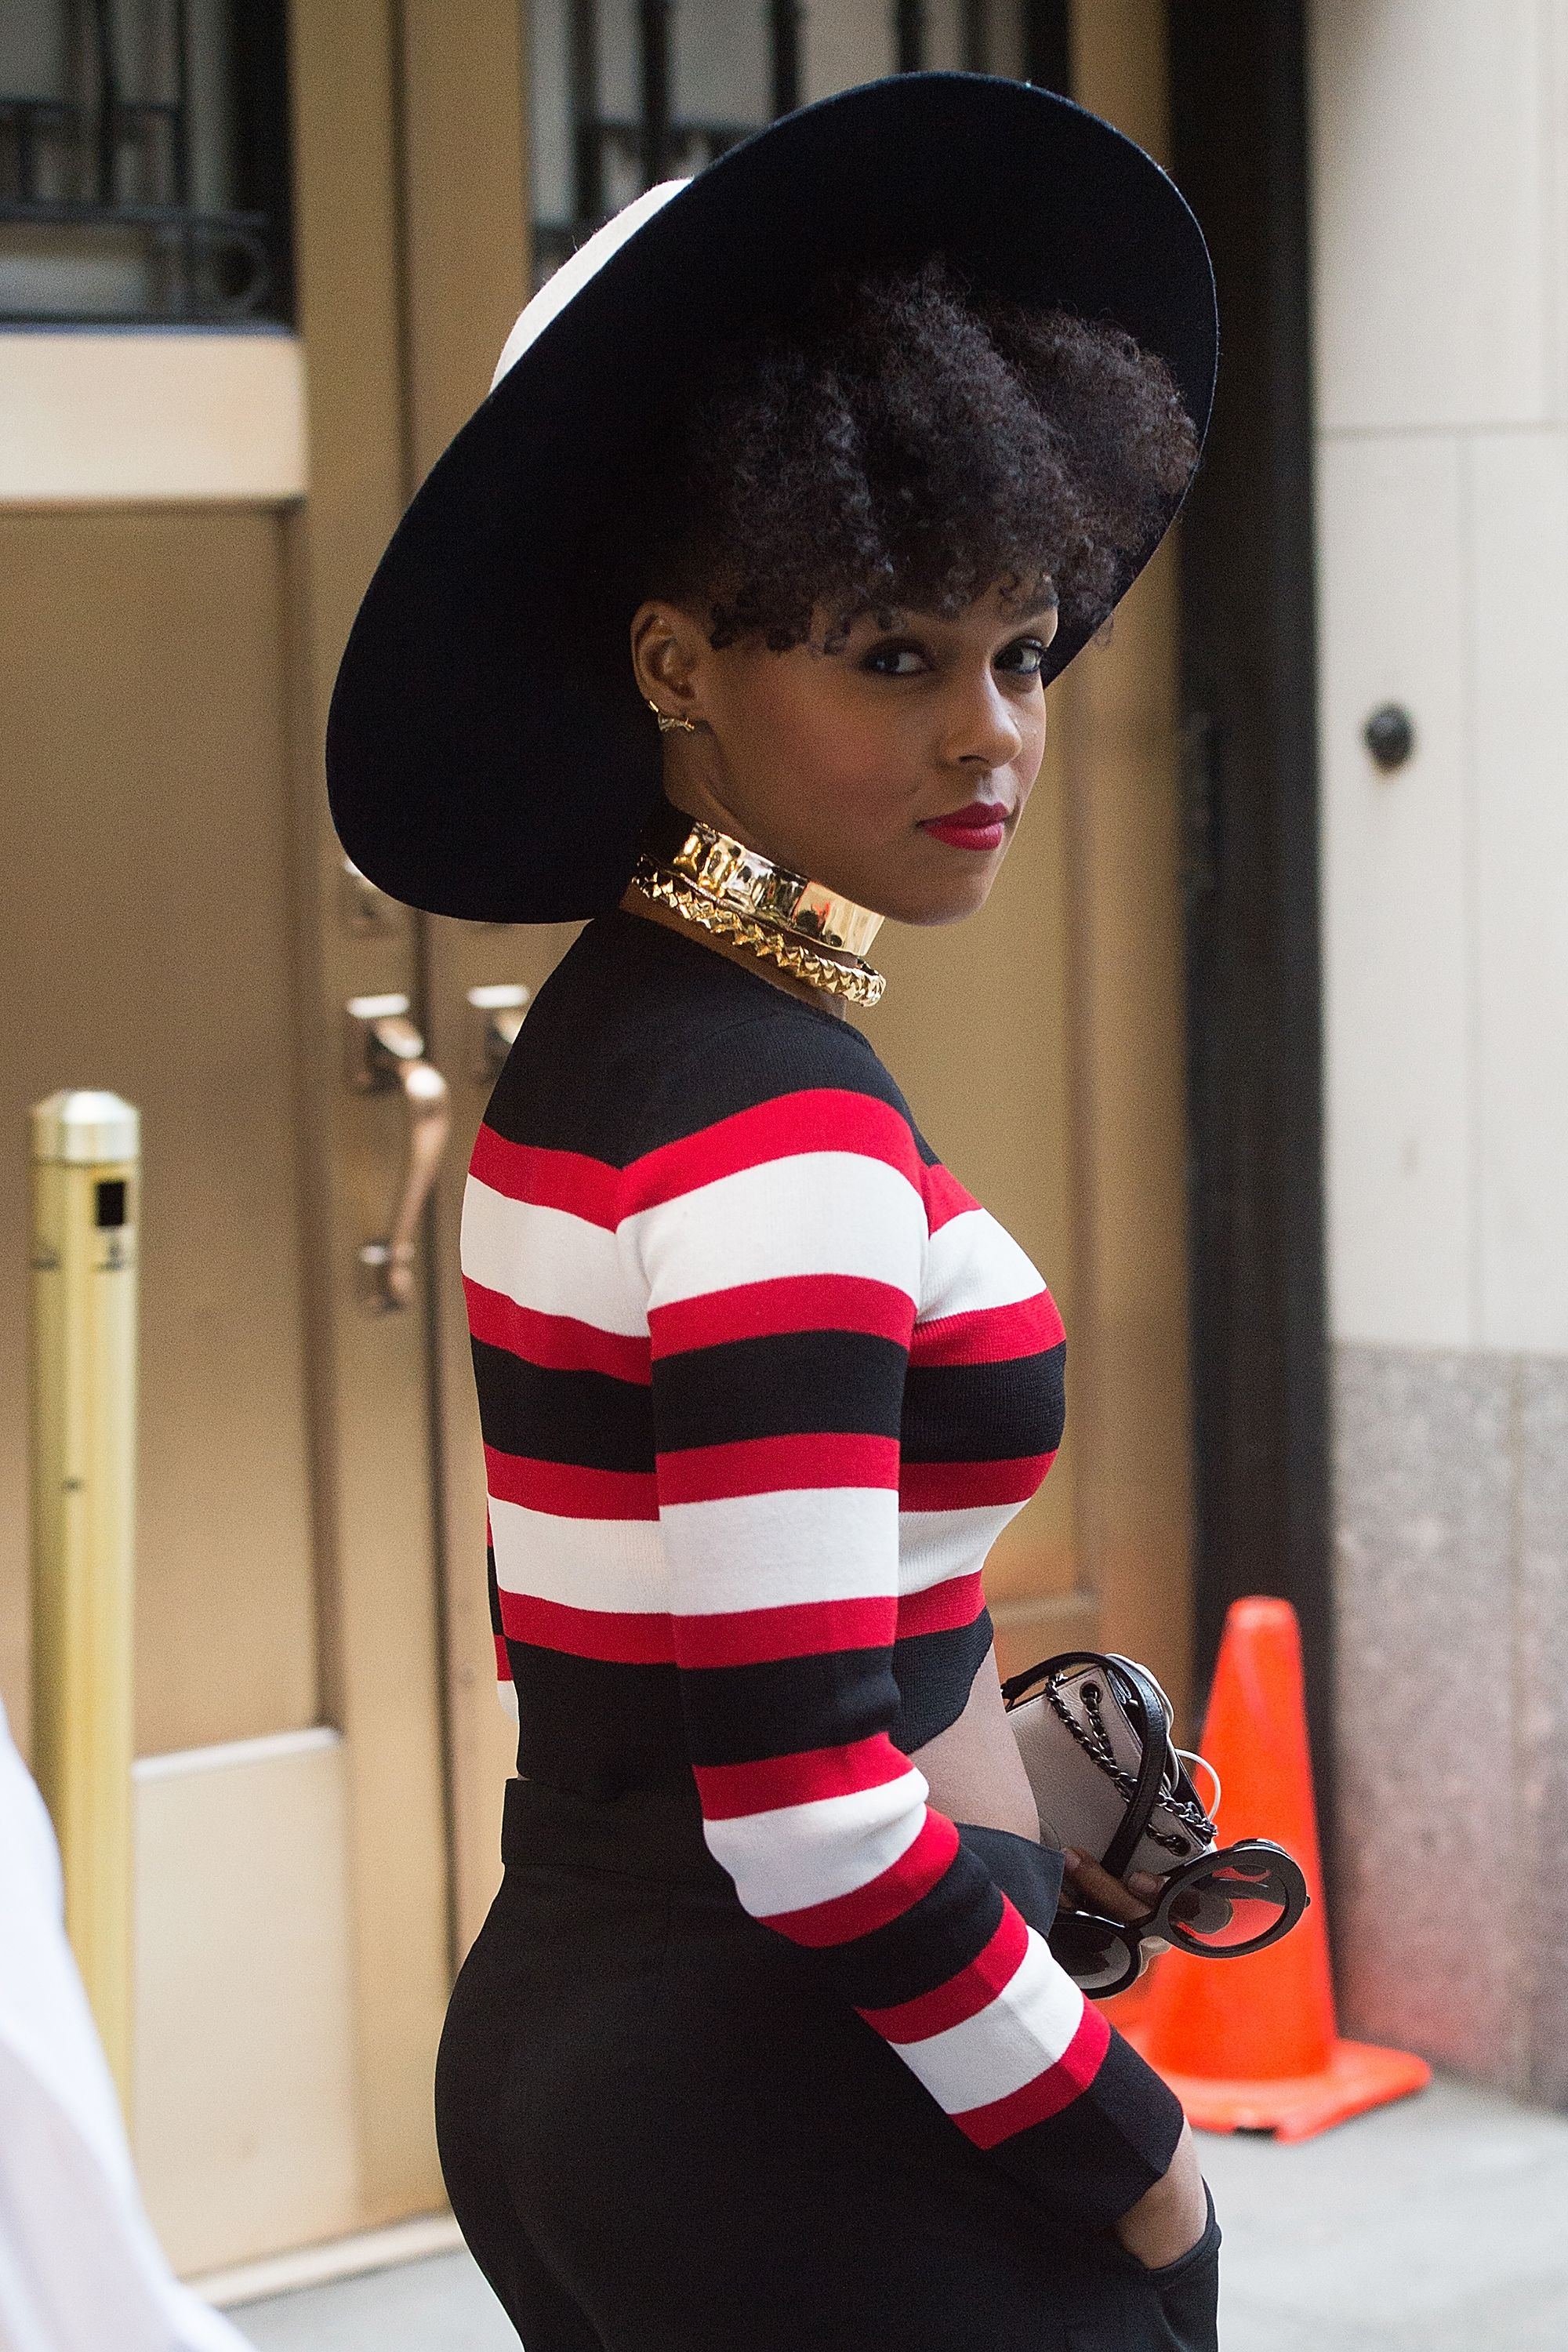 Known for her beauty risks, Monae keeps it playful with curls tumbling out of a wide brim hat, and a bright red lip that makes a statement, too.   - ELLE.com